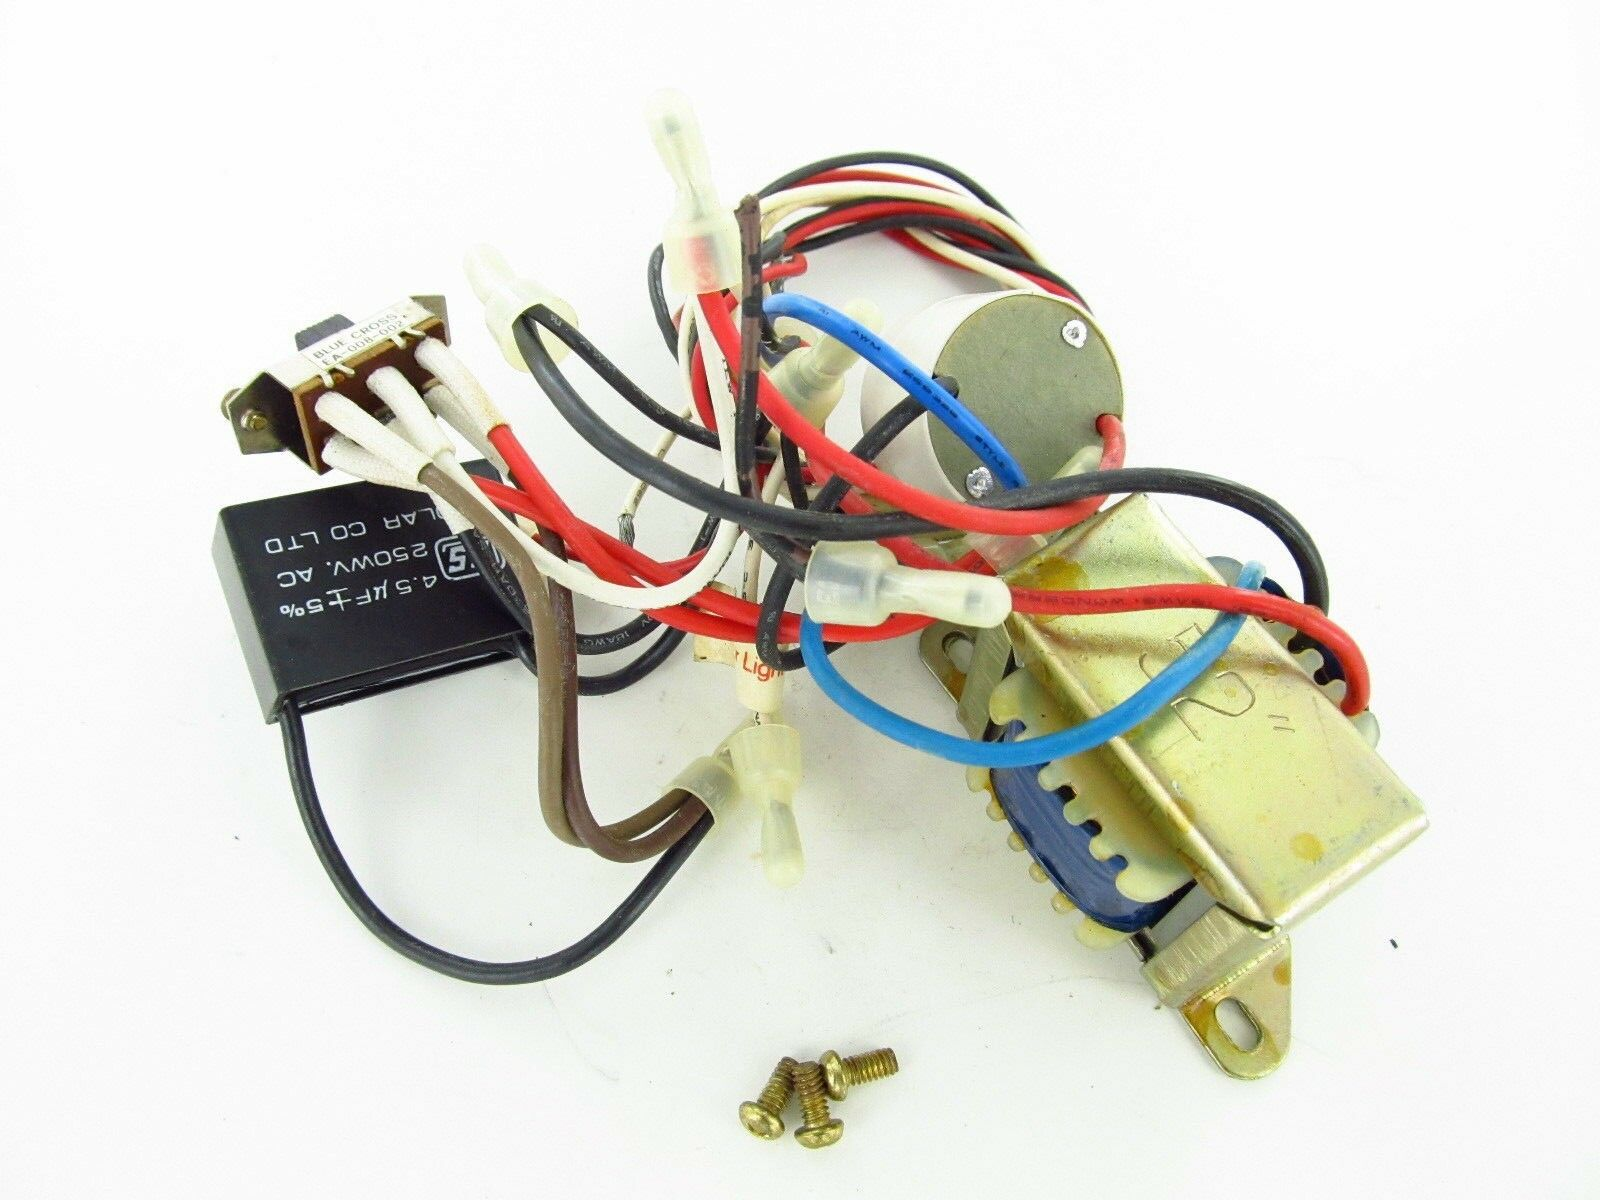 hight resolution of  5 used nutone ceiling fan wiring harness with switchs capacitor parts 1